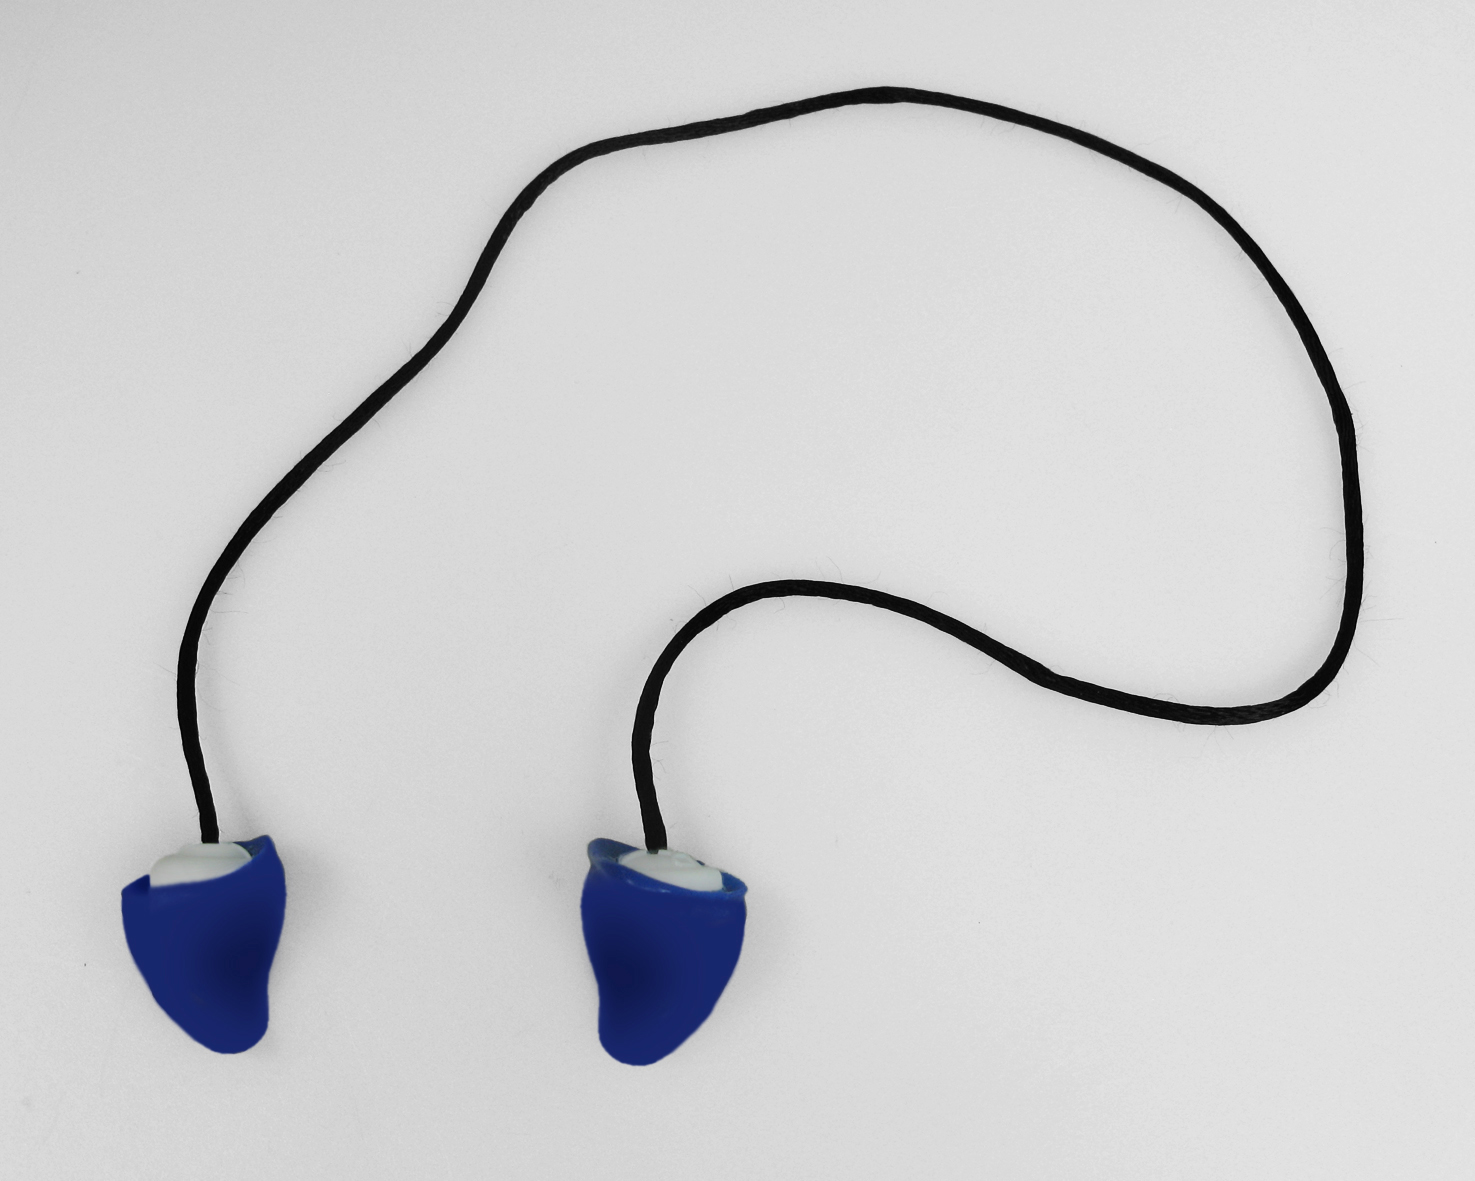 Which Are The Best Ear Plugs For Sleeping And Snoring?